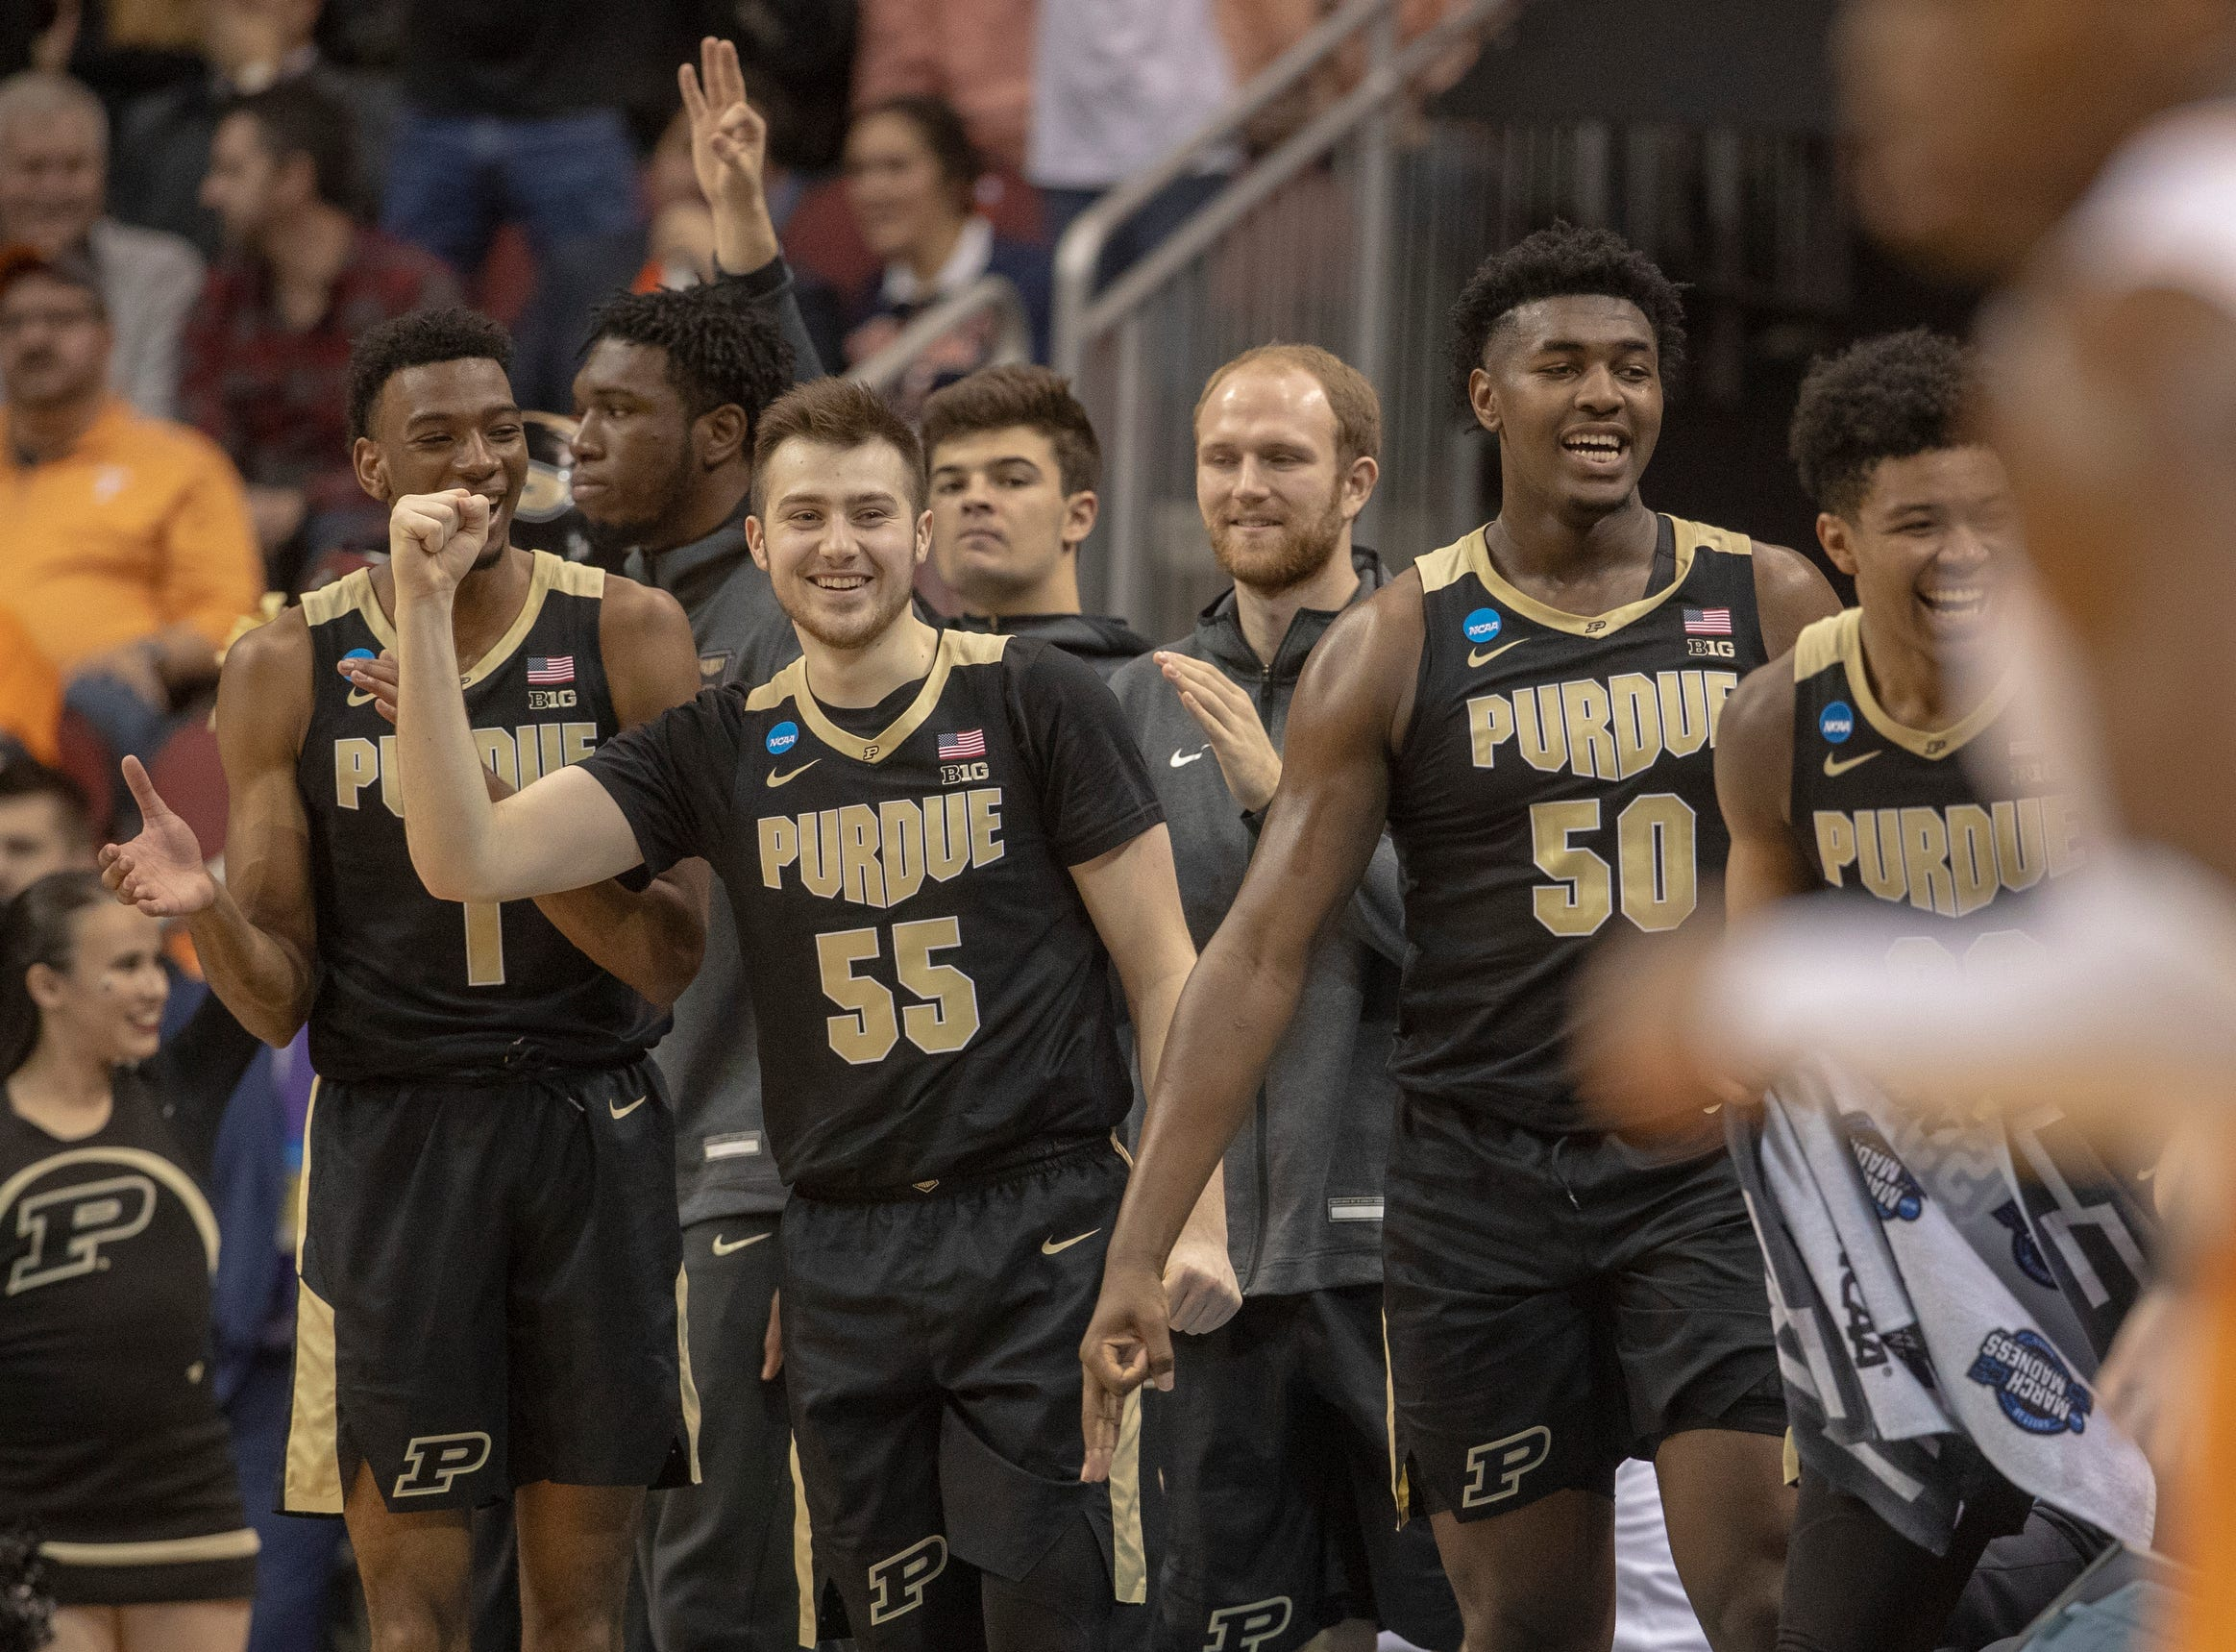 Purdue bench members cheer for a good shooting first half against Tennessee, NCAA Division 1 Men's Basketball 'Sweet Sixteen' game, KFC Yum Center, Louisville, Thursday, March 28, 2019.